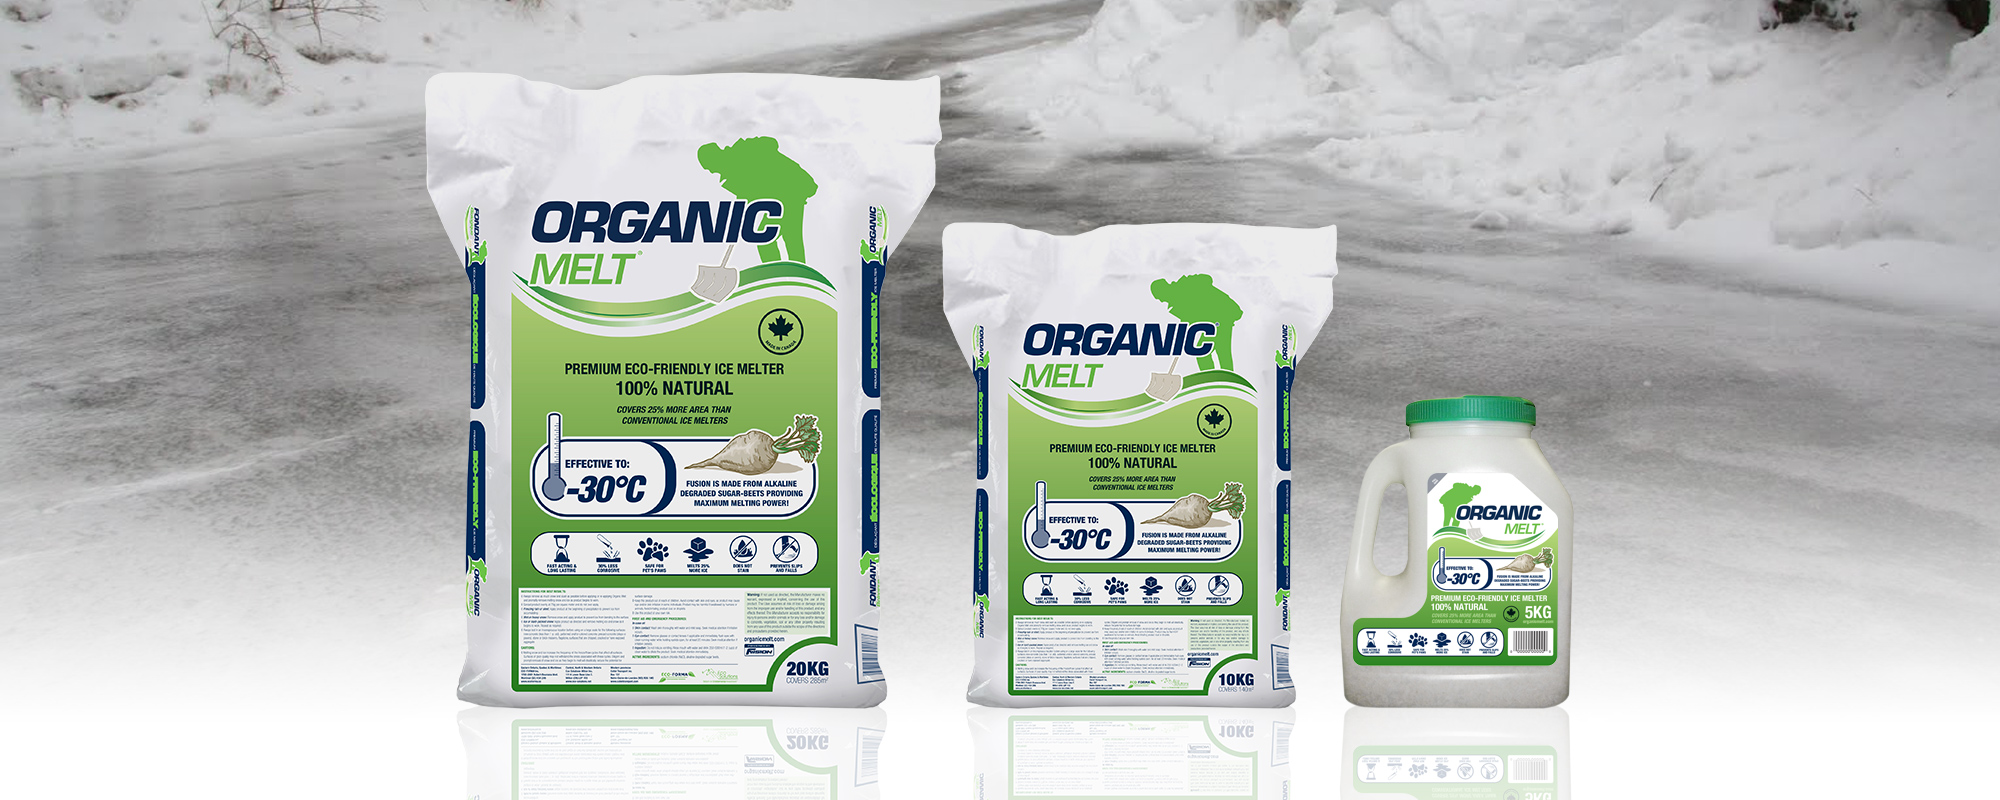 Organic Melt Natural Premium Ice Melt